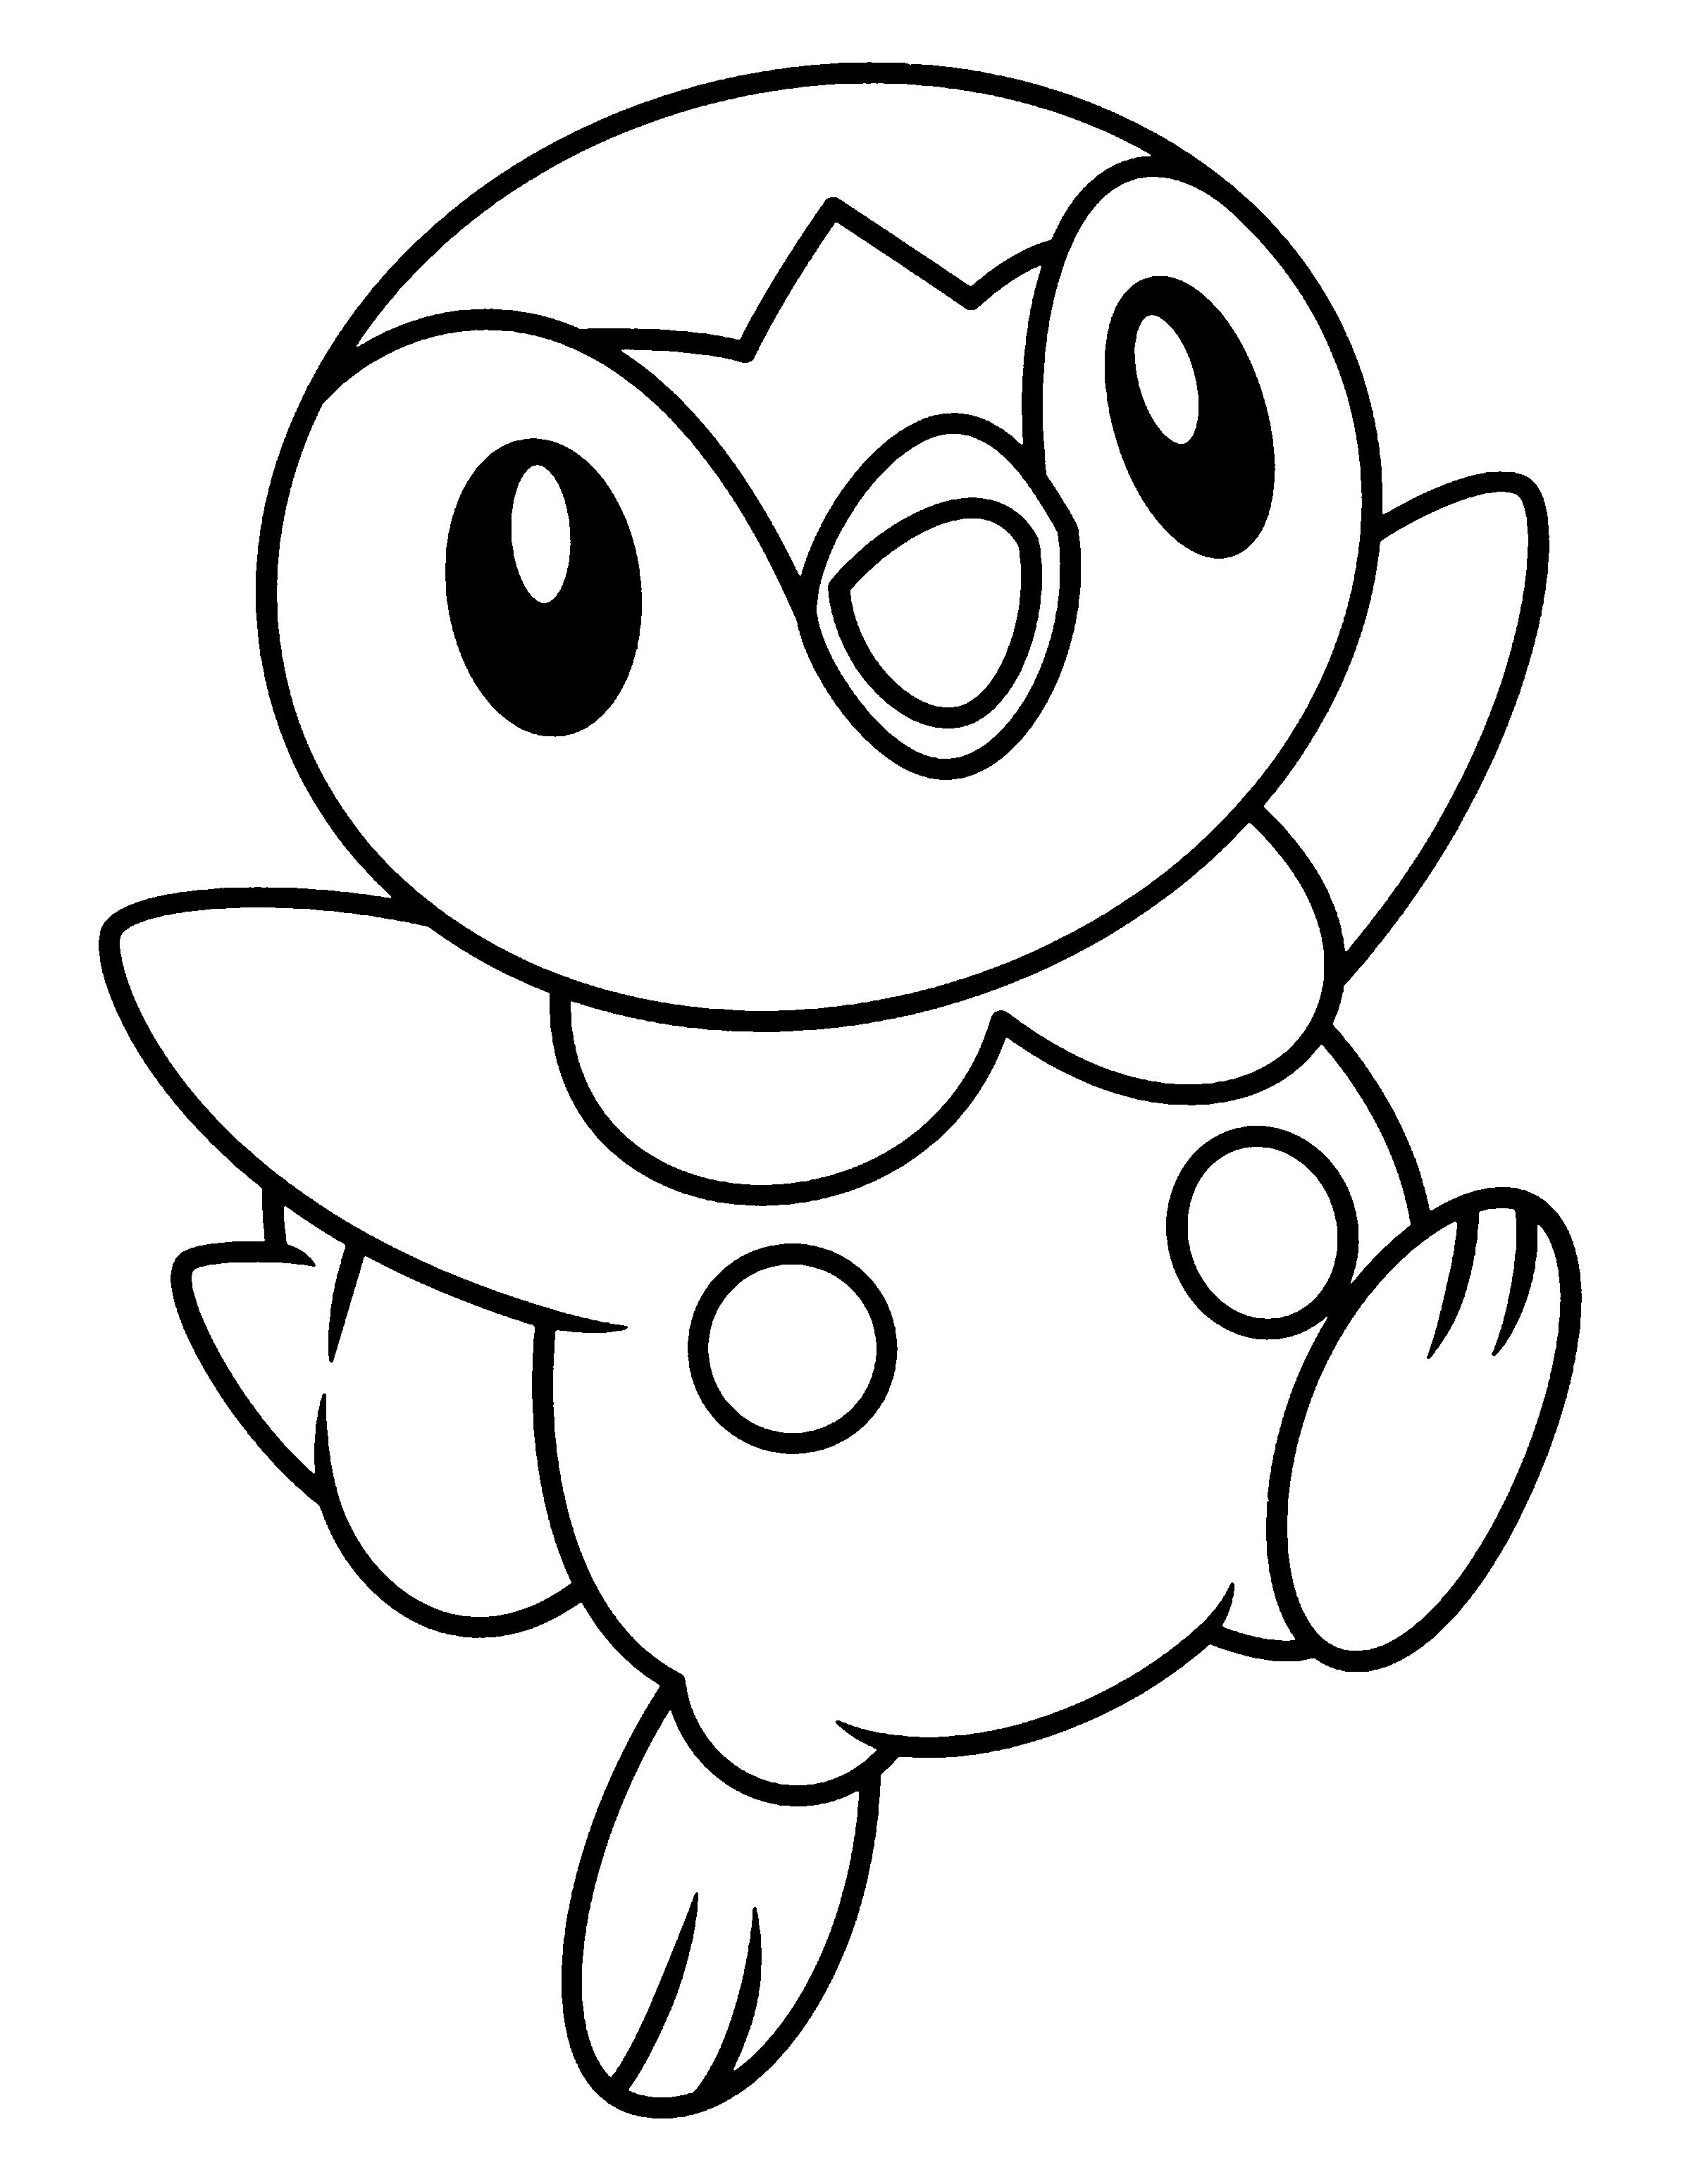 squirtle coloring page squirtle pokemon coloring page free pokémon coloring page coloring squirtle